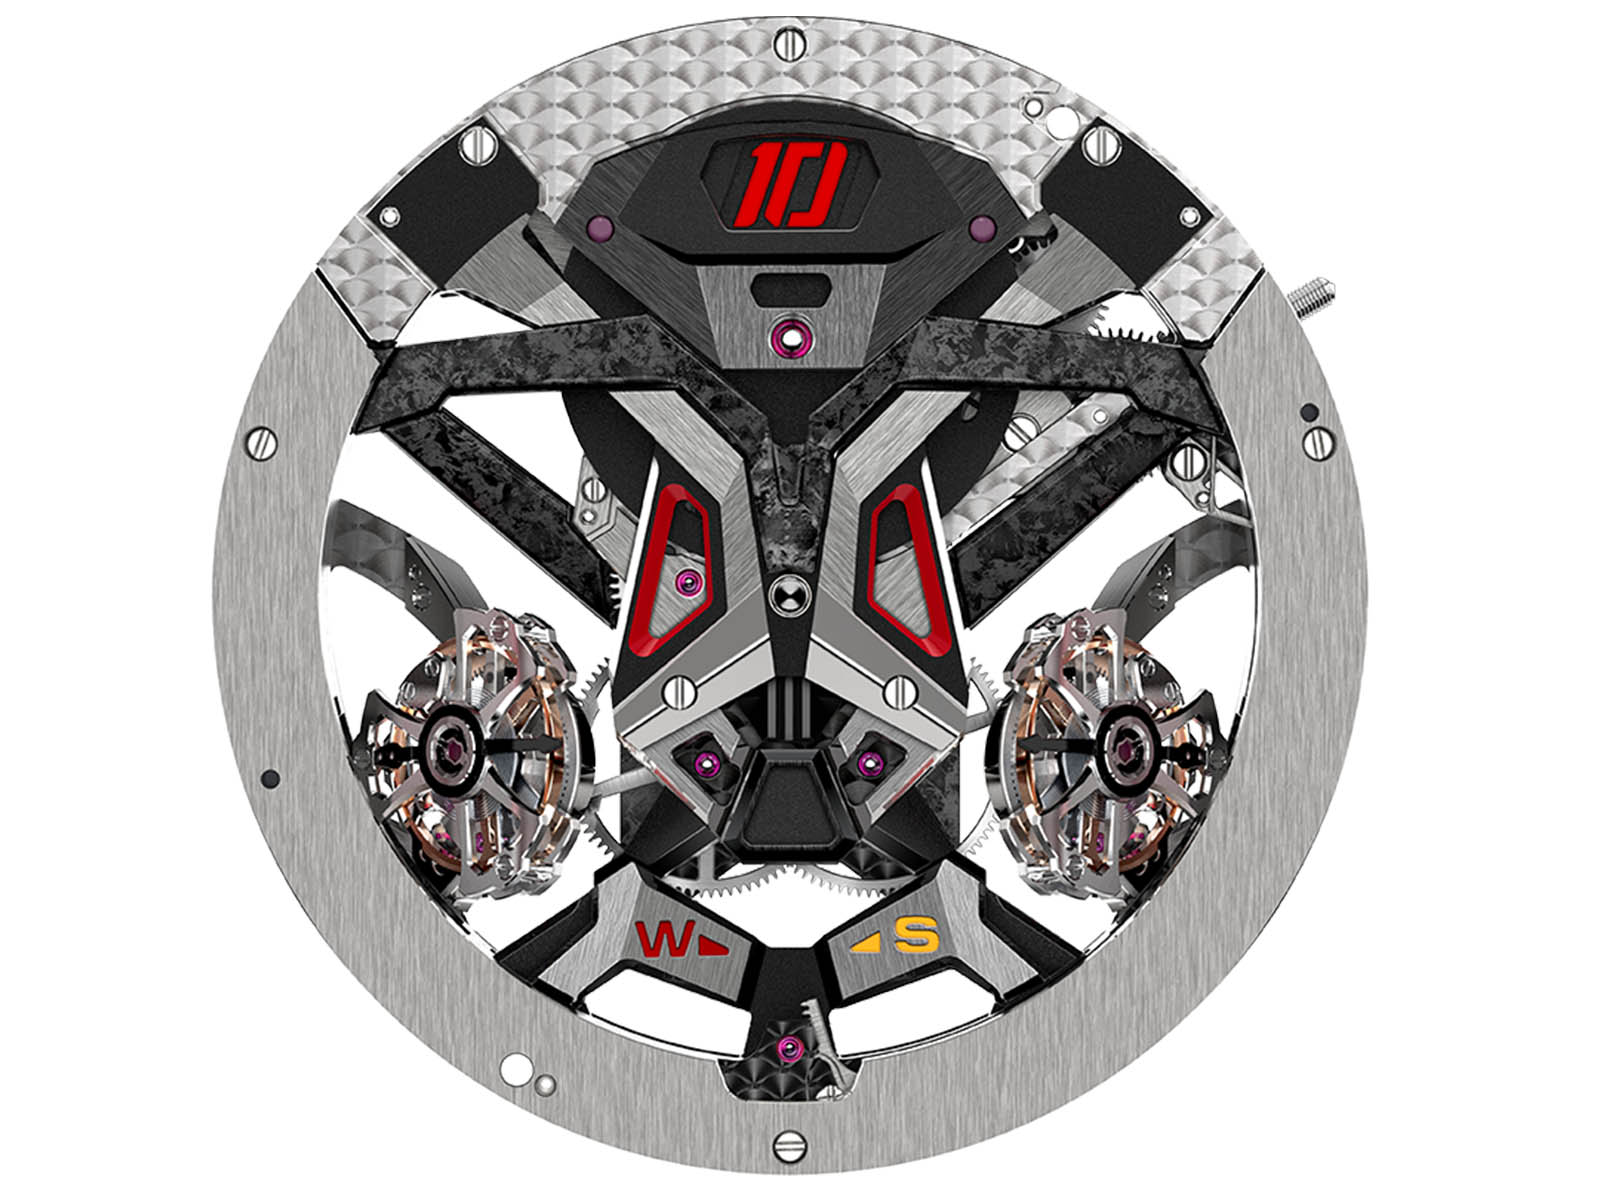 rddbex0765-roger-dubuis-excalibur-one-off-6.jpg